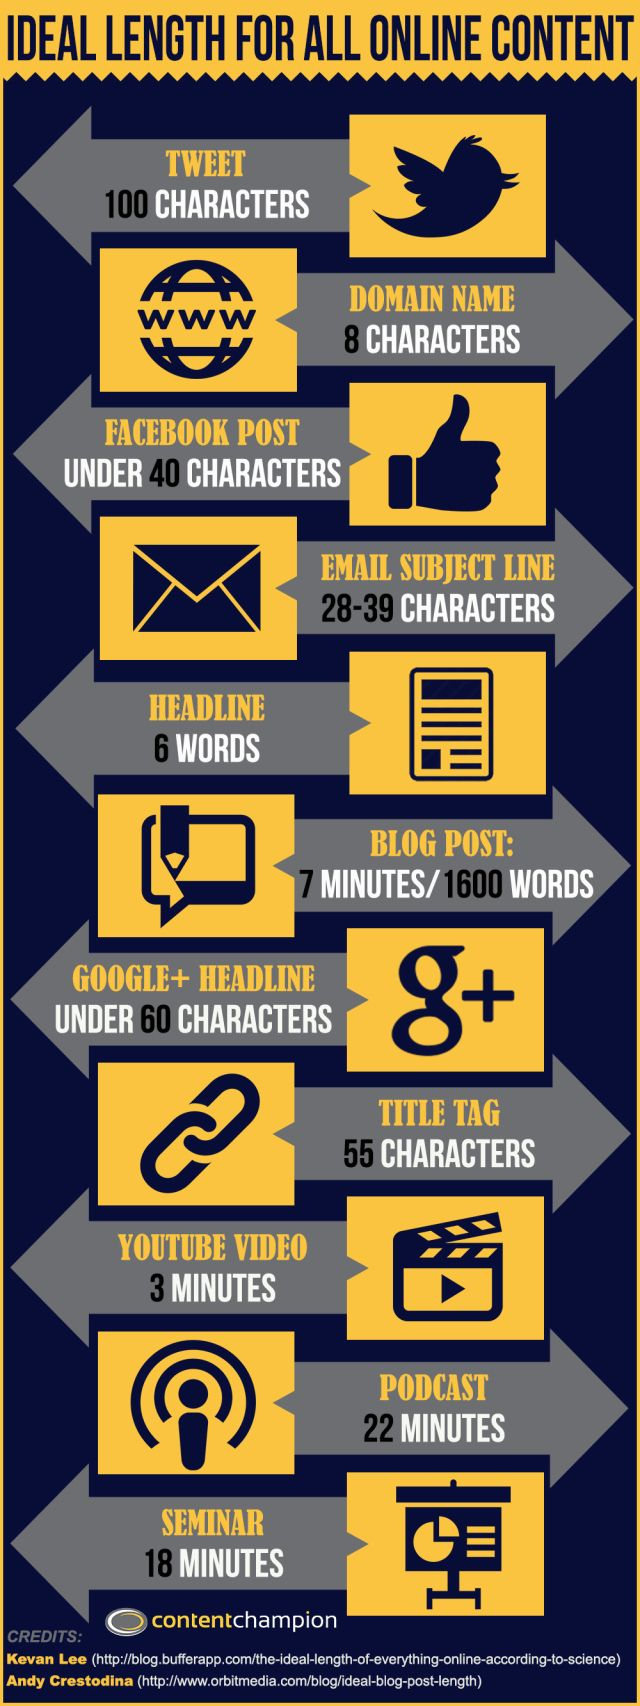 Ideal lenght for all online content #infografia #infographic #marketing